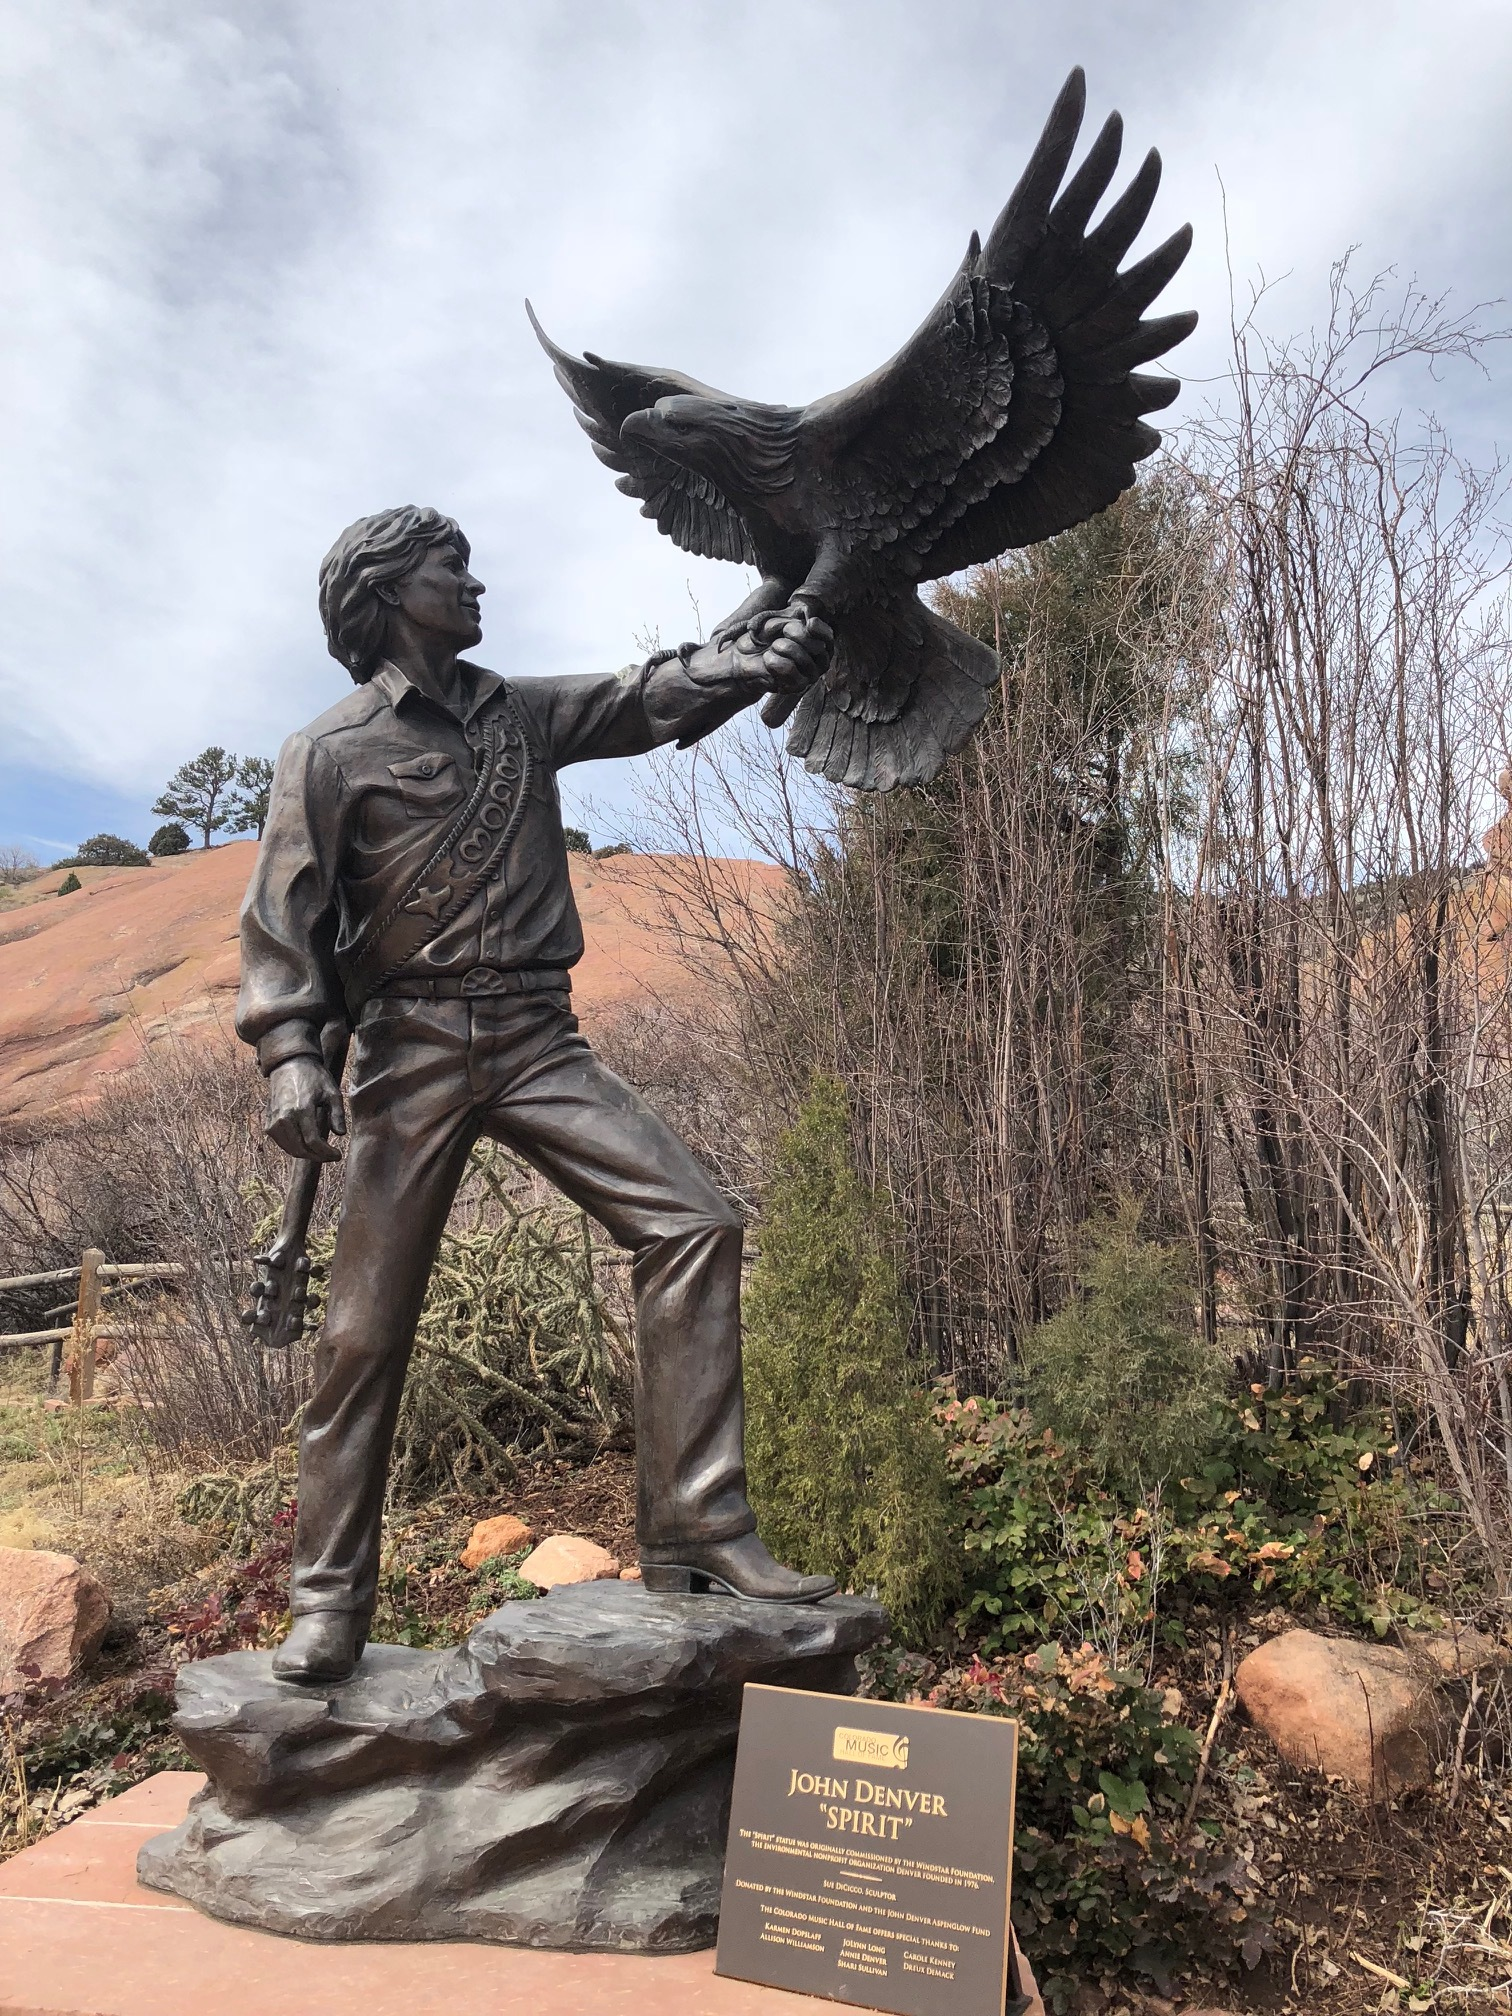 Being from West Virginia means that John Denver and his song Country Roads has a special place in my heart, so it was very exciting to see the statue